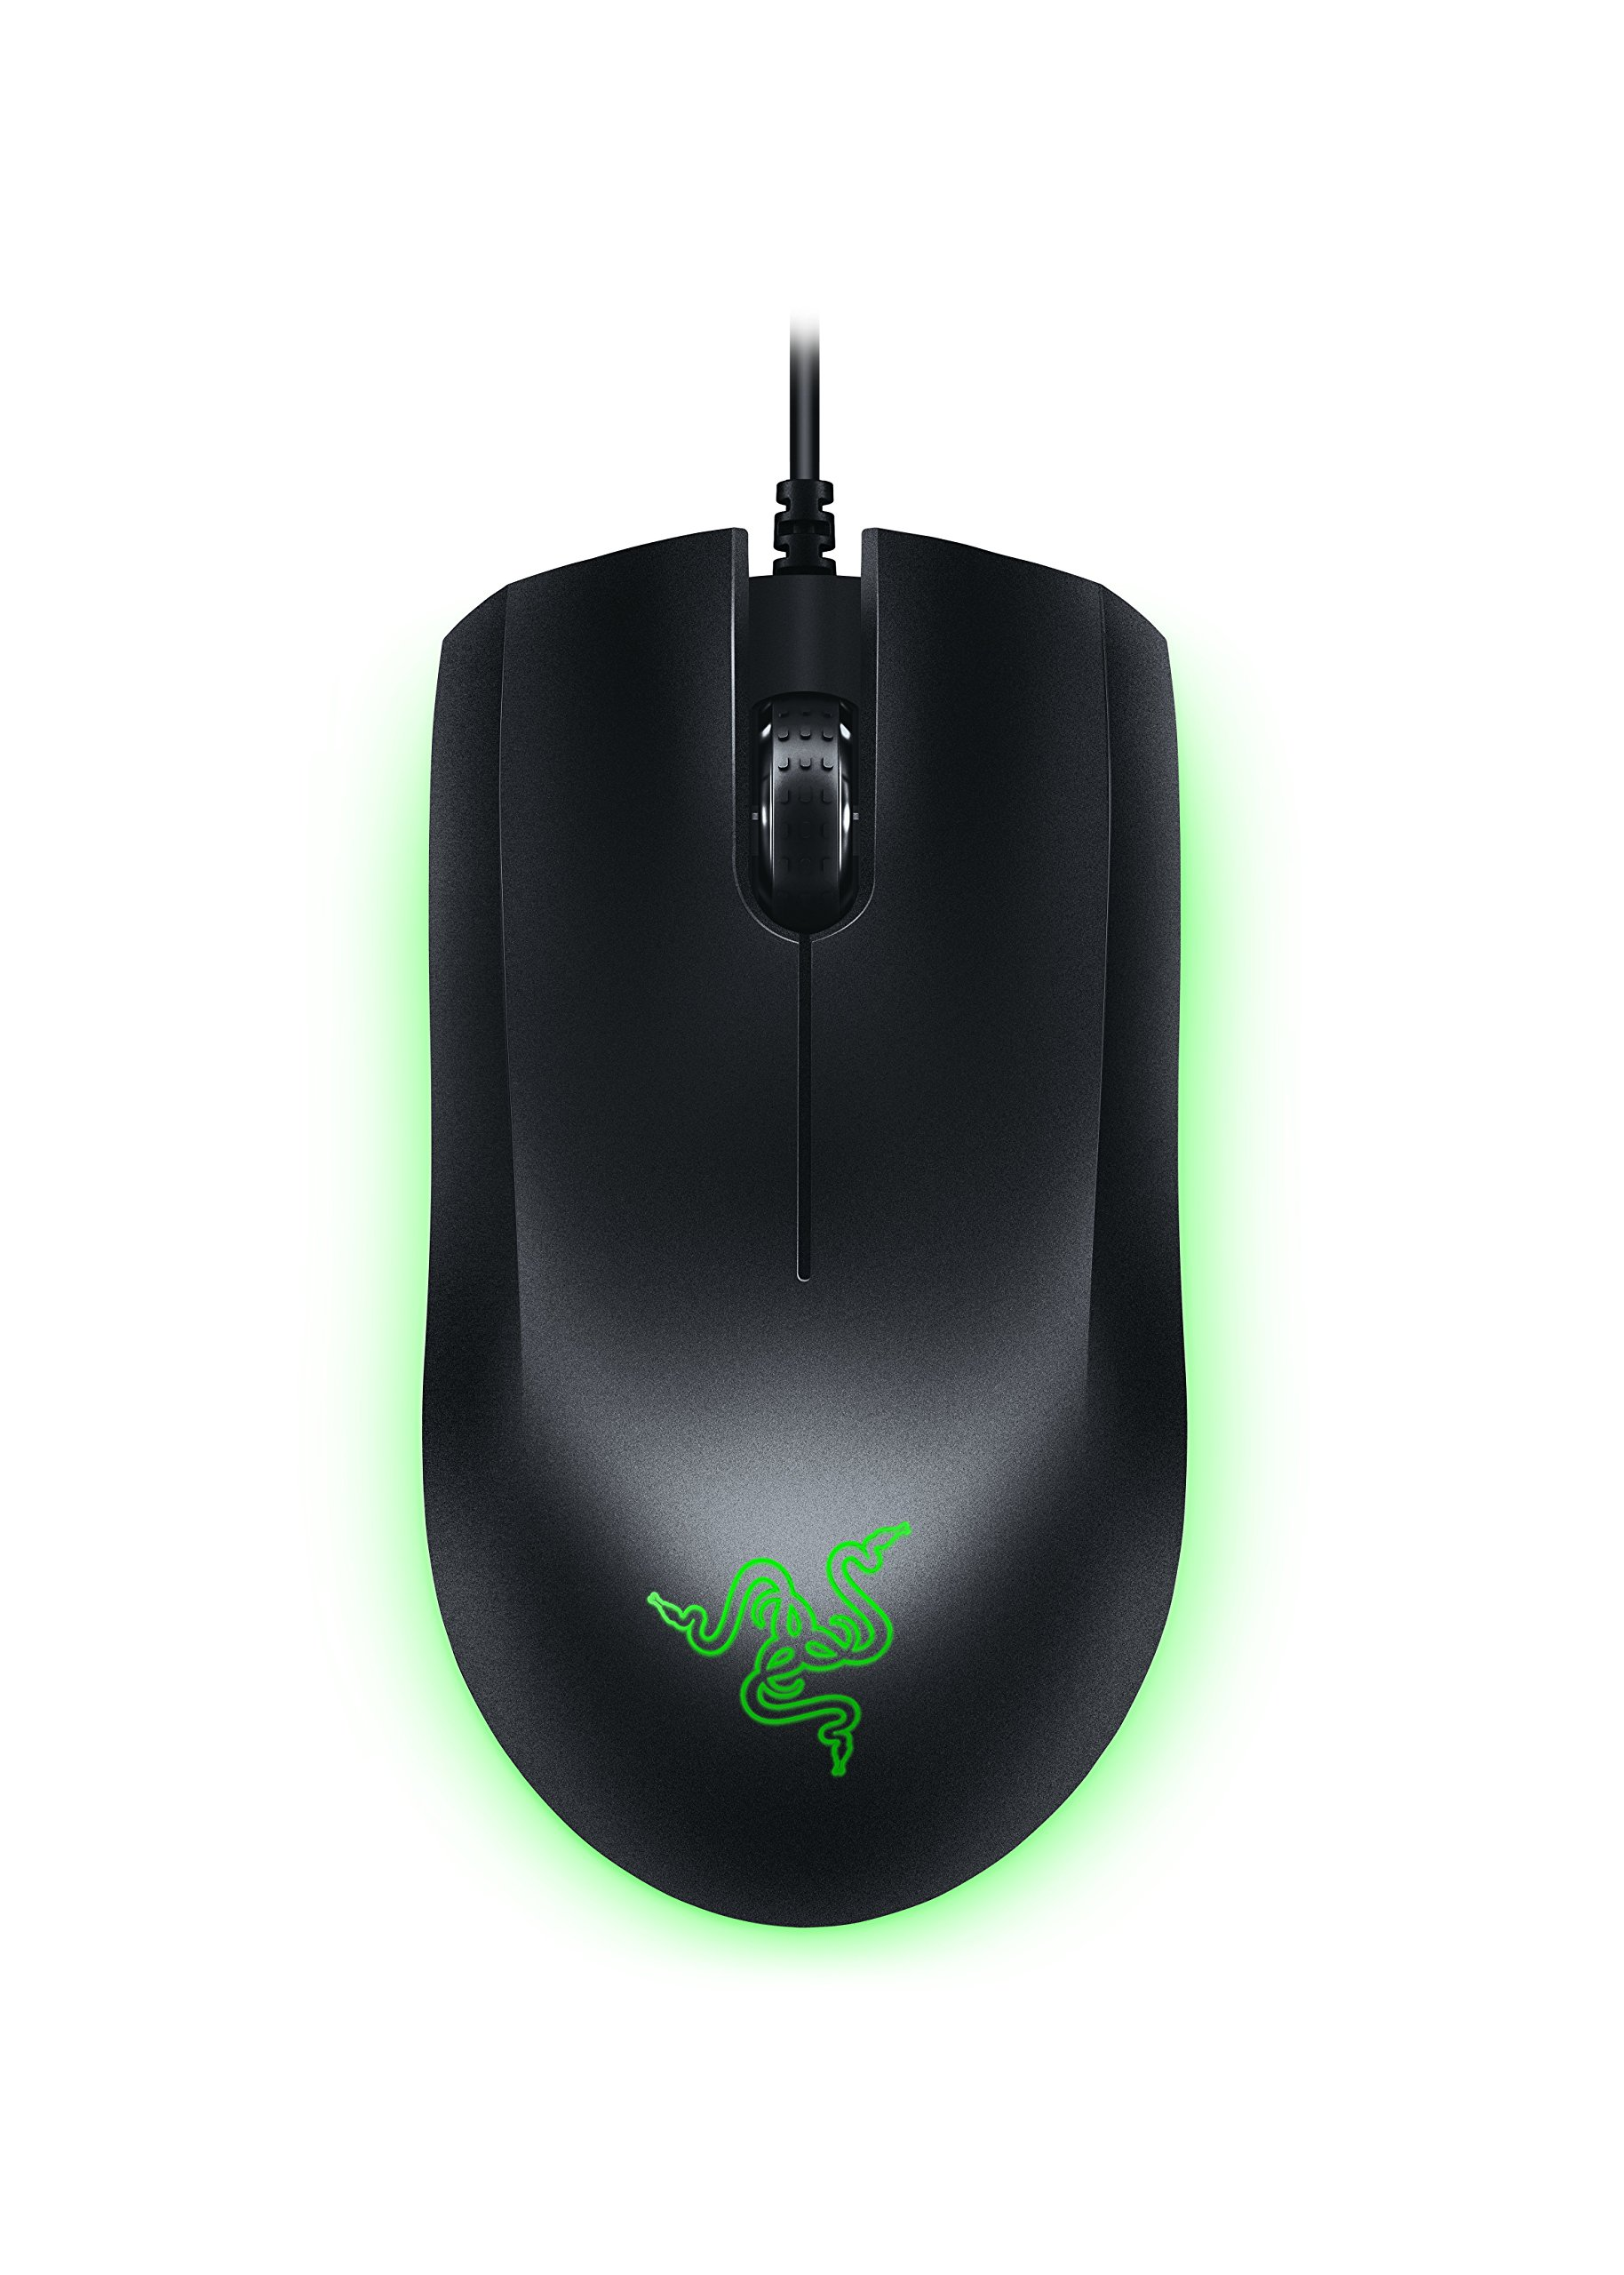 Mouse Gamer : Razer Abyssus Essential: True 7200 DPI Sensor